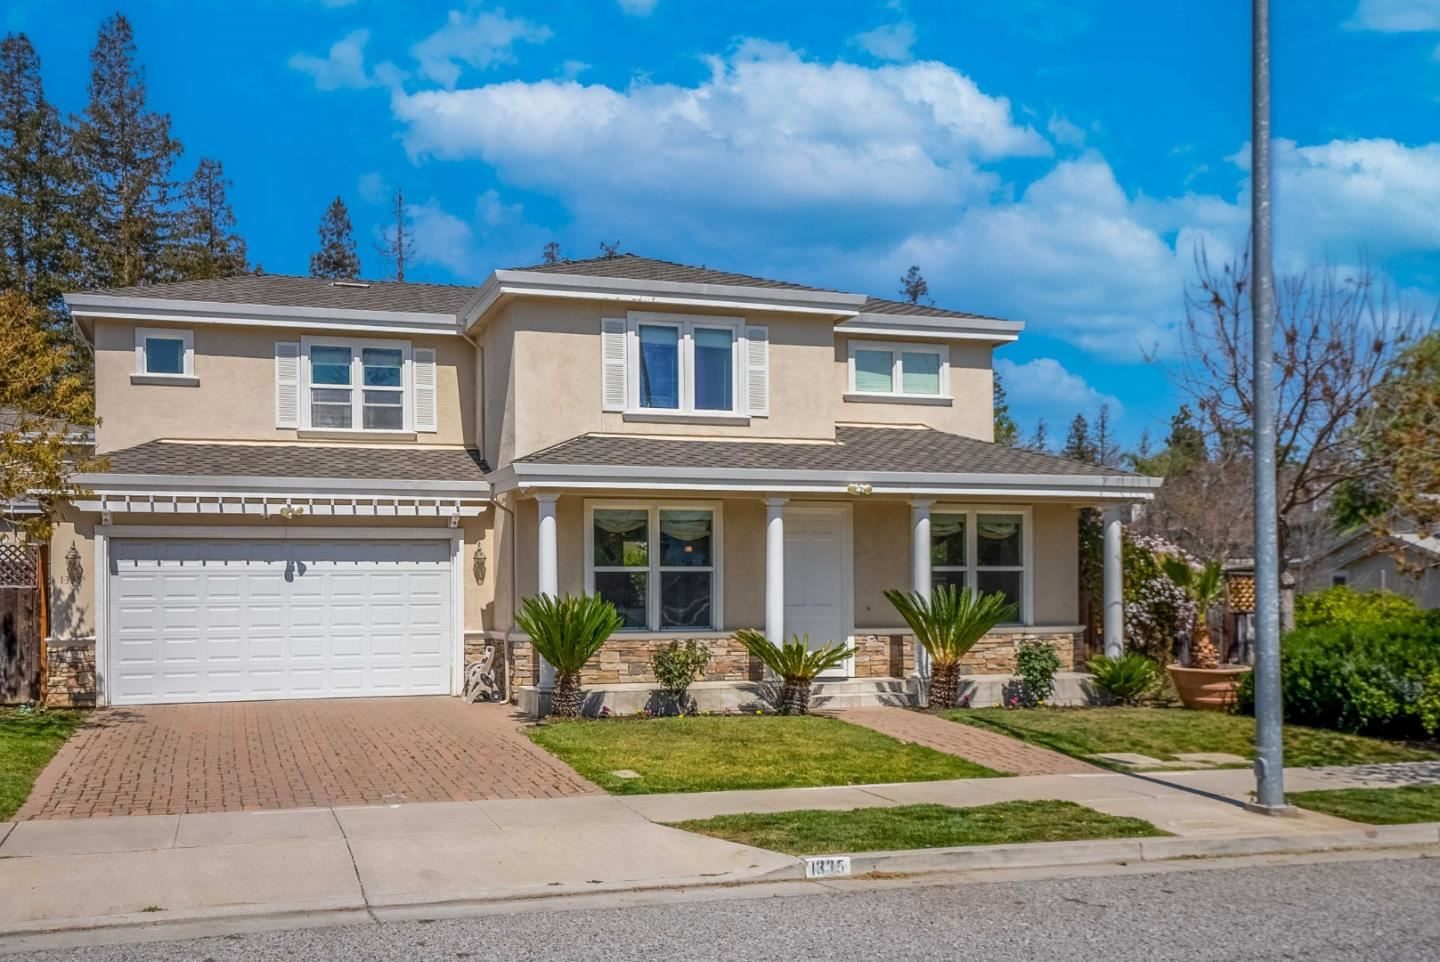 Photo for 1335 Elam AVE, CAMPBELL, CA 95008 (MLS # ML81837209)